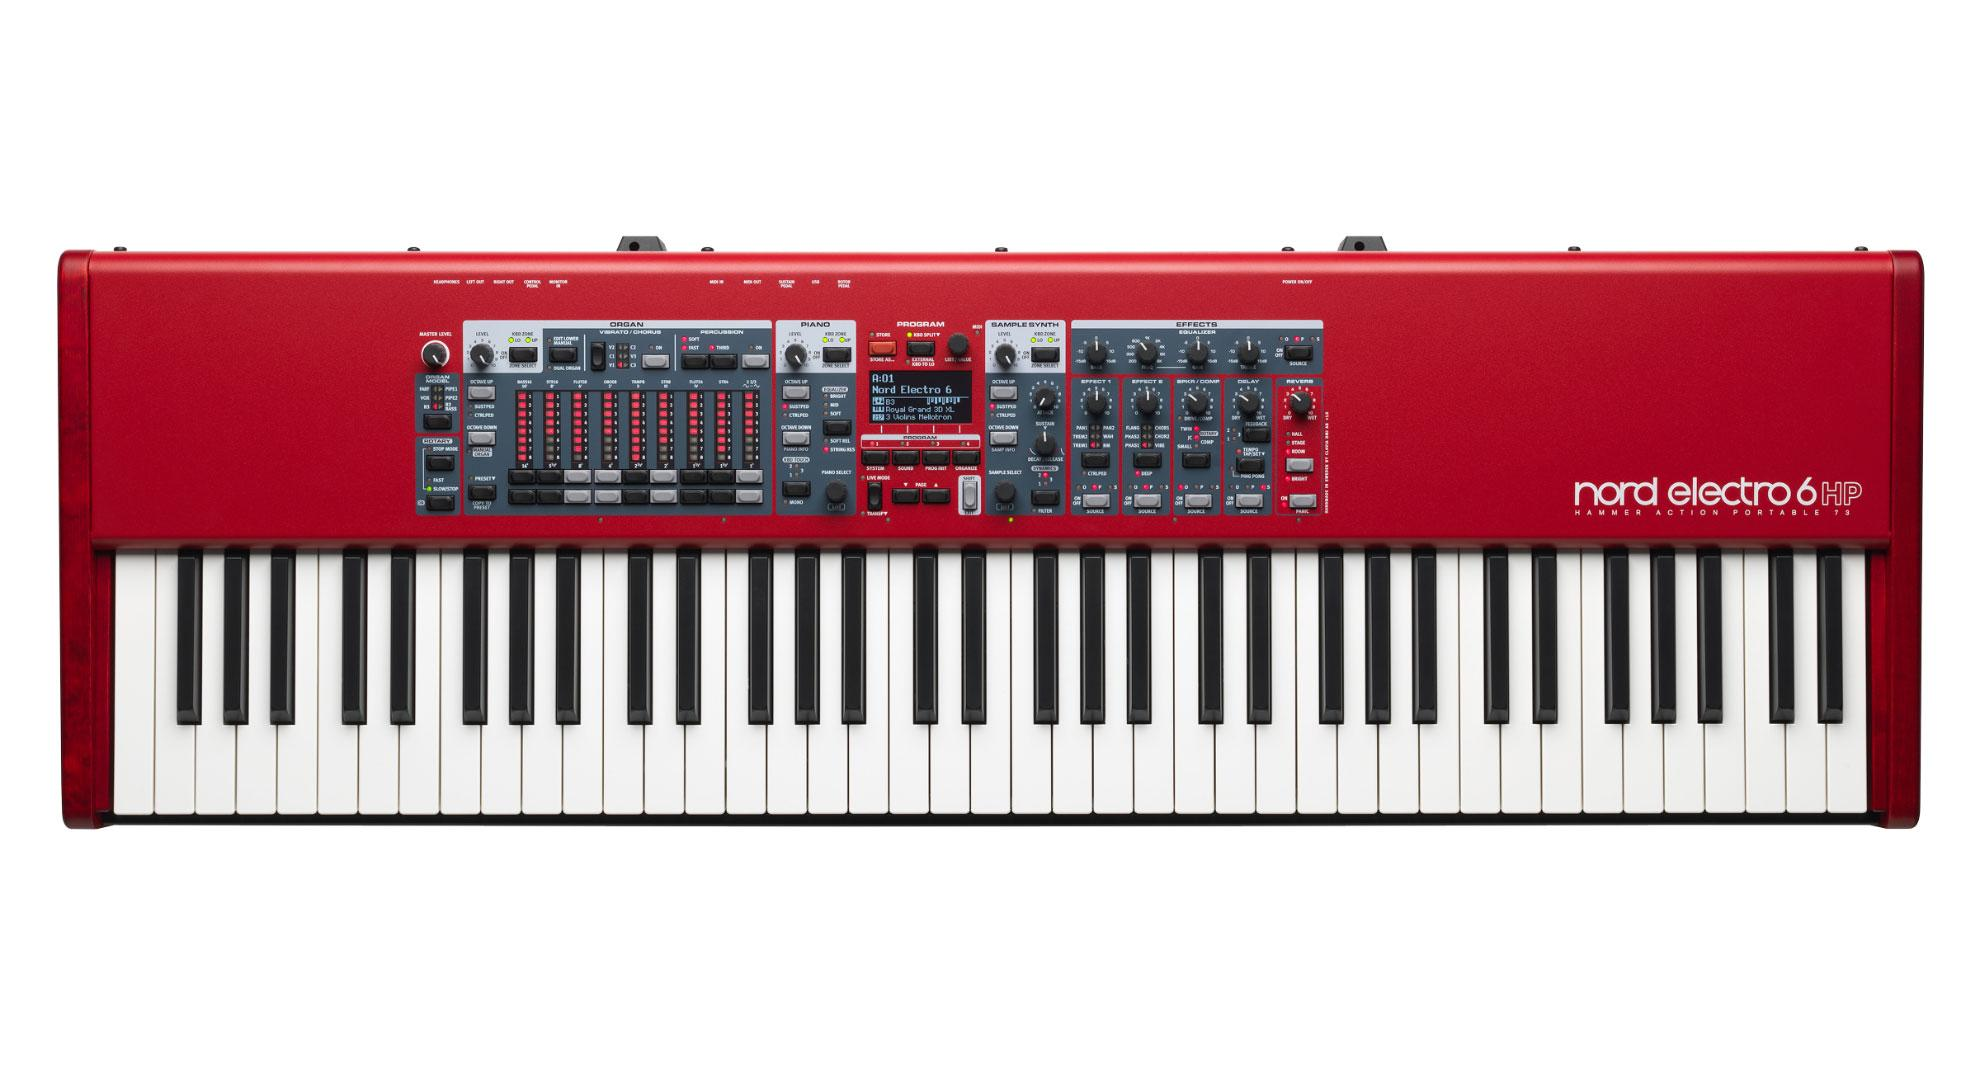 Stagepianos - Clavia Nord Electro 6 HP 73 - Onlineshop Musikhaus Kirstein